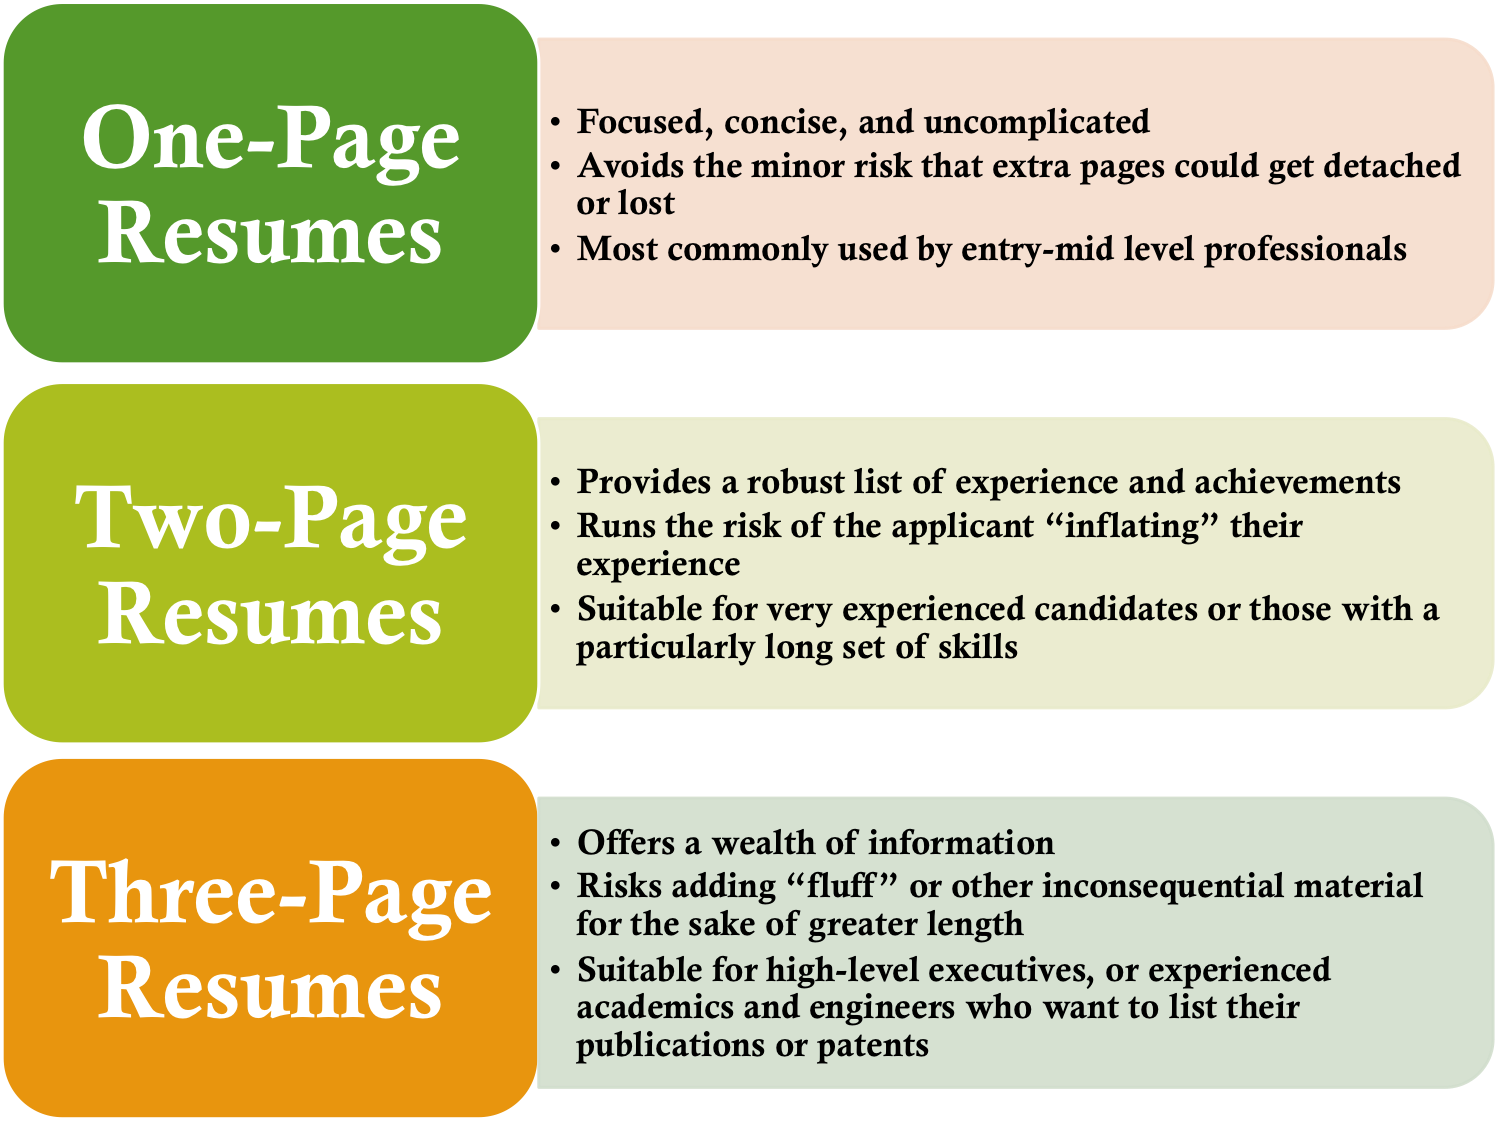 Ideal Resume Length  One Page Resume Or Two